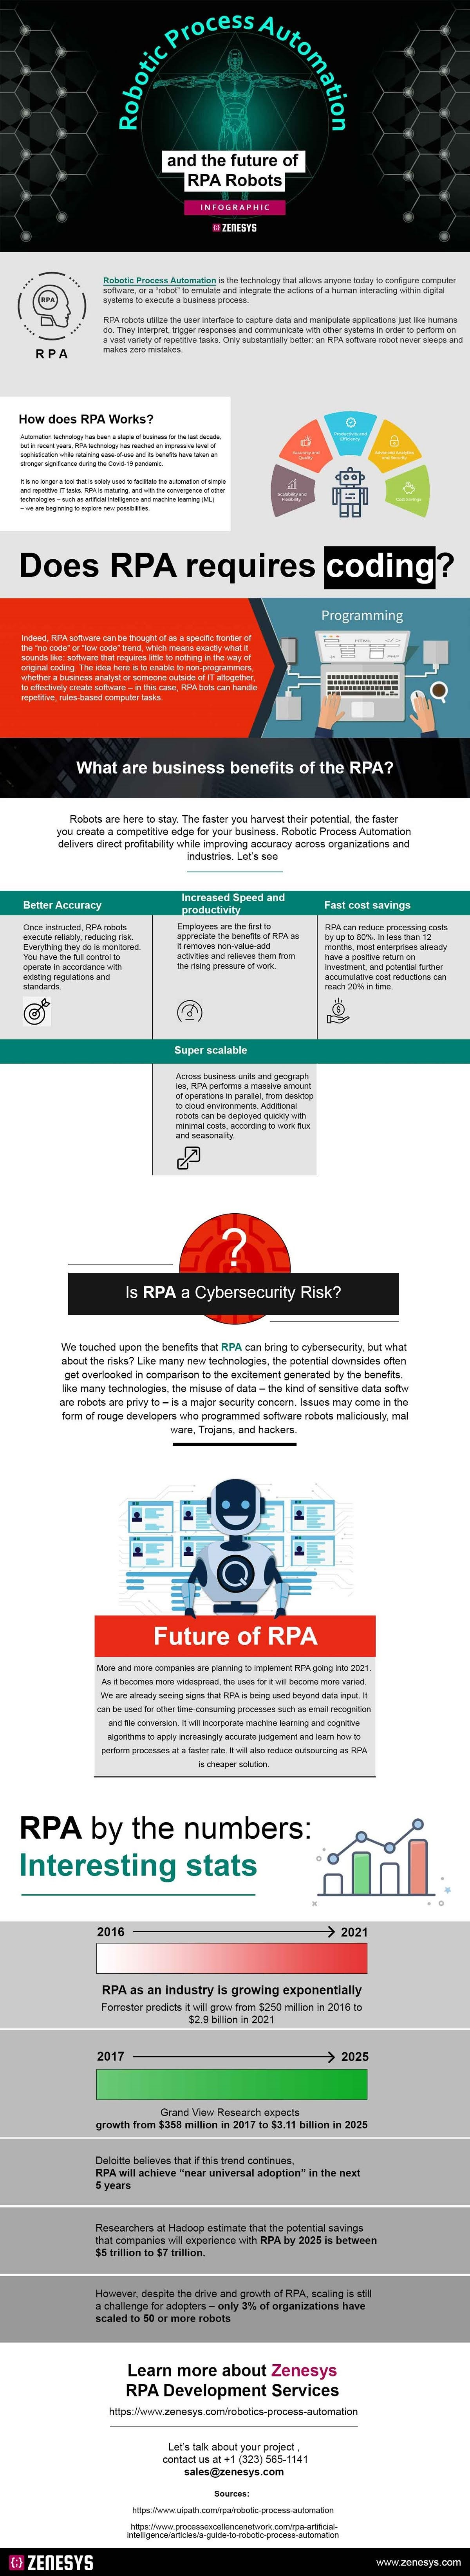 robotic-process-automation-and-the-future-of-rpa-robots-infographic